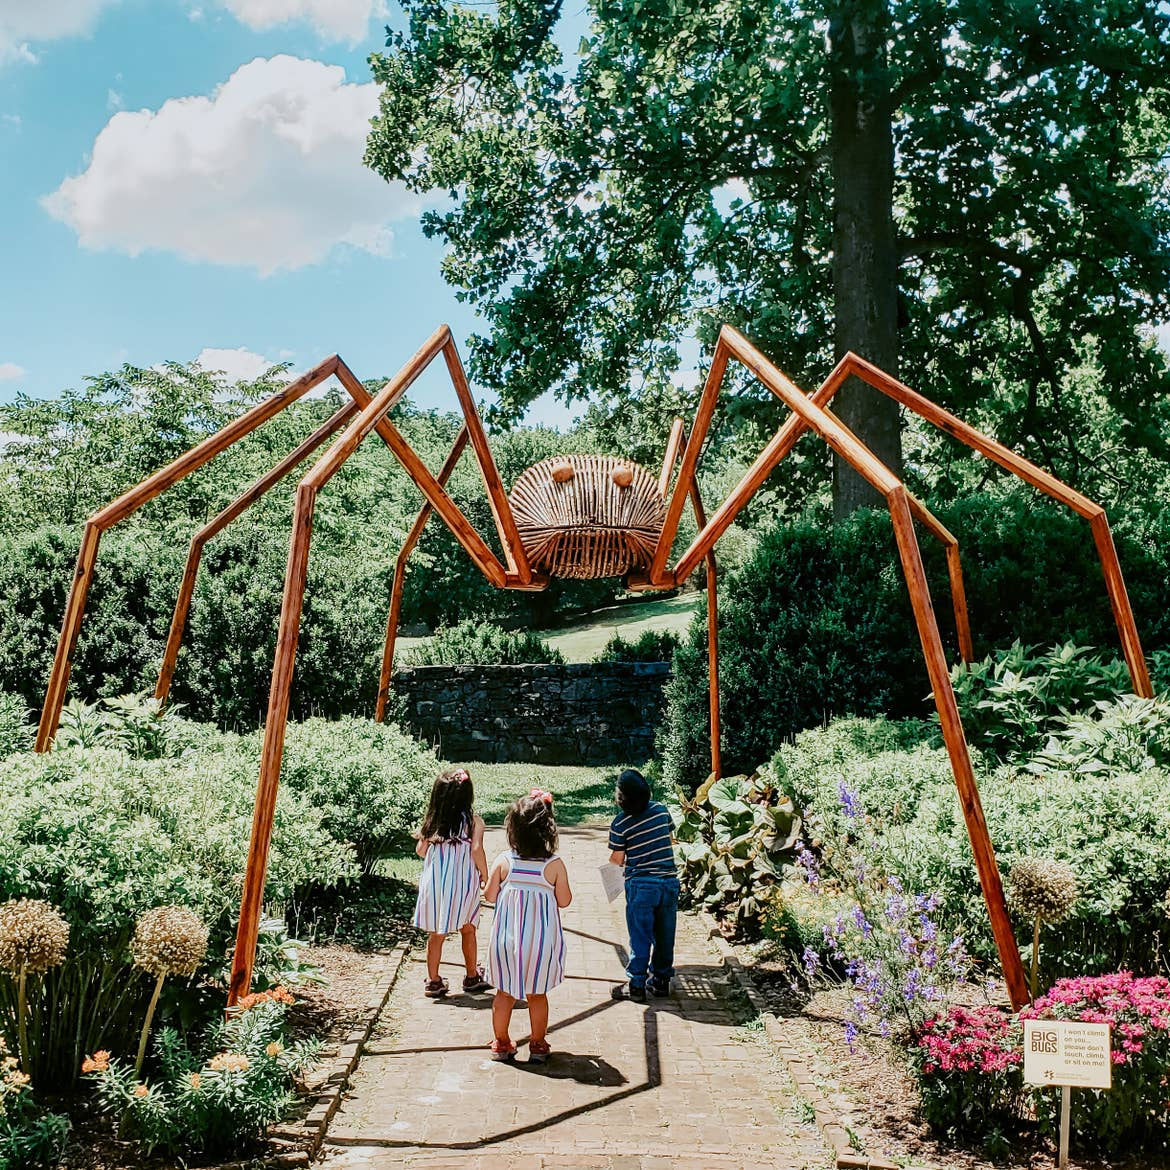 Angelica's kids looking up at a giant wooden spider at the Big Bugs Sculpture Exhibit at the Museum of the Shenandoah Valley.